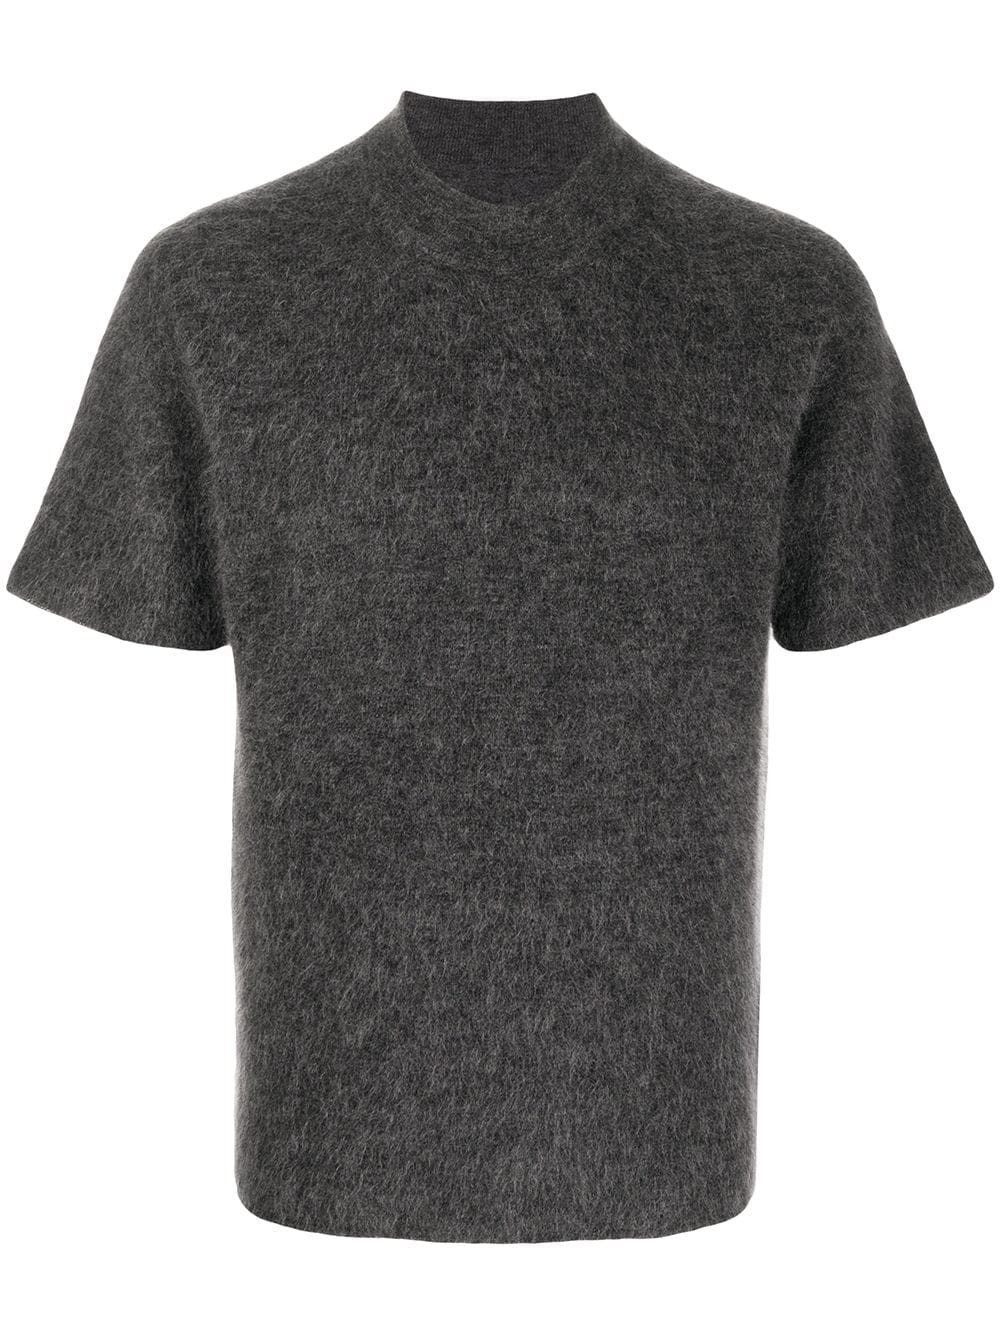 LE TSHIRT MAILLE